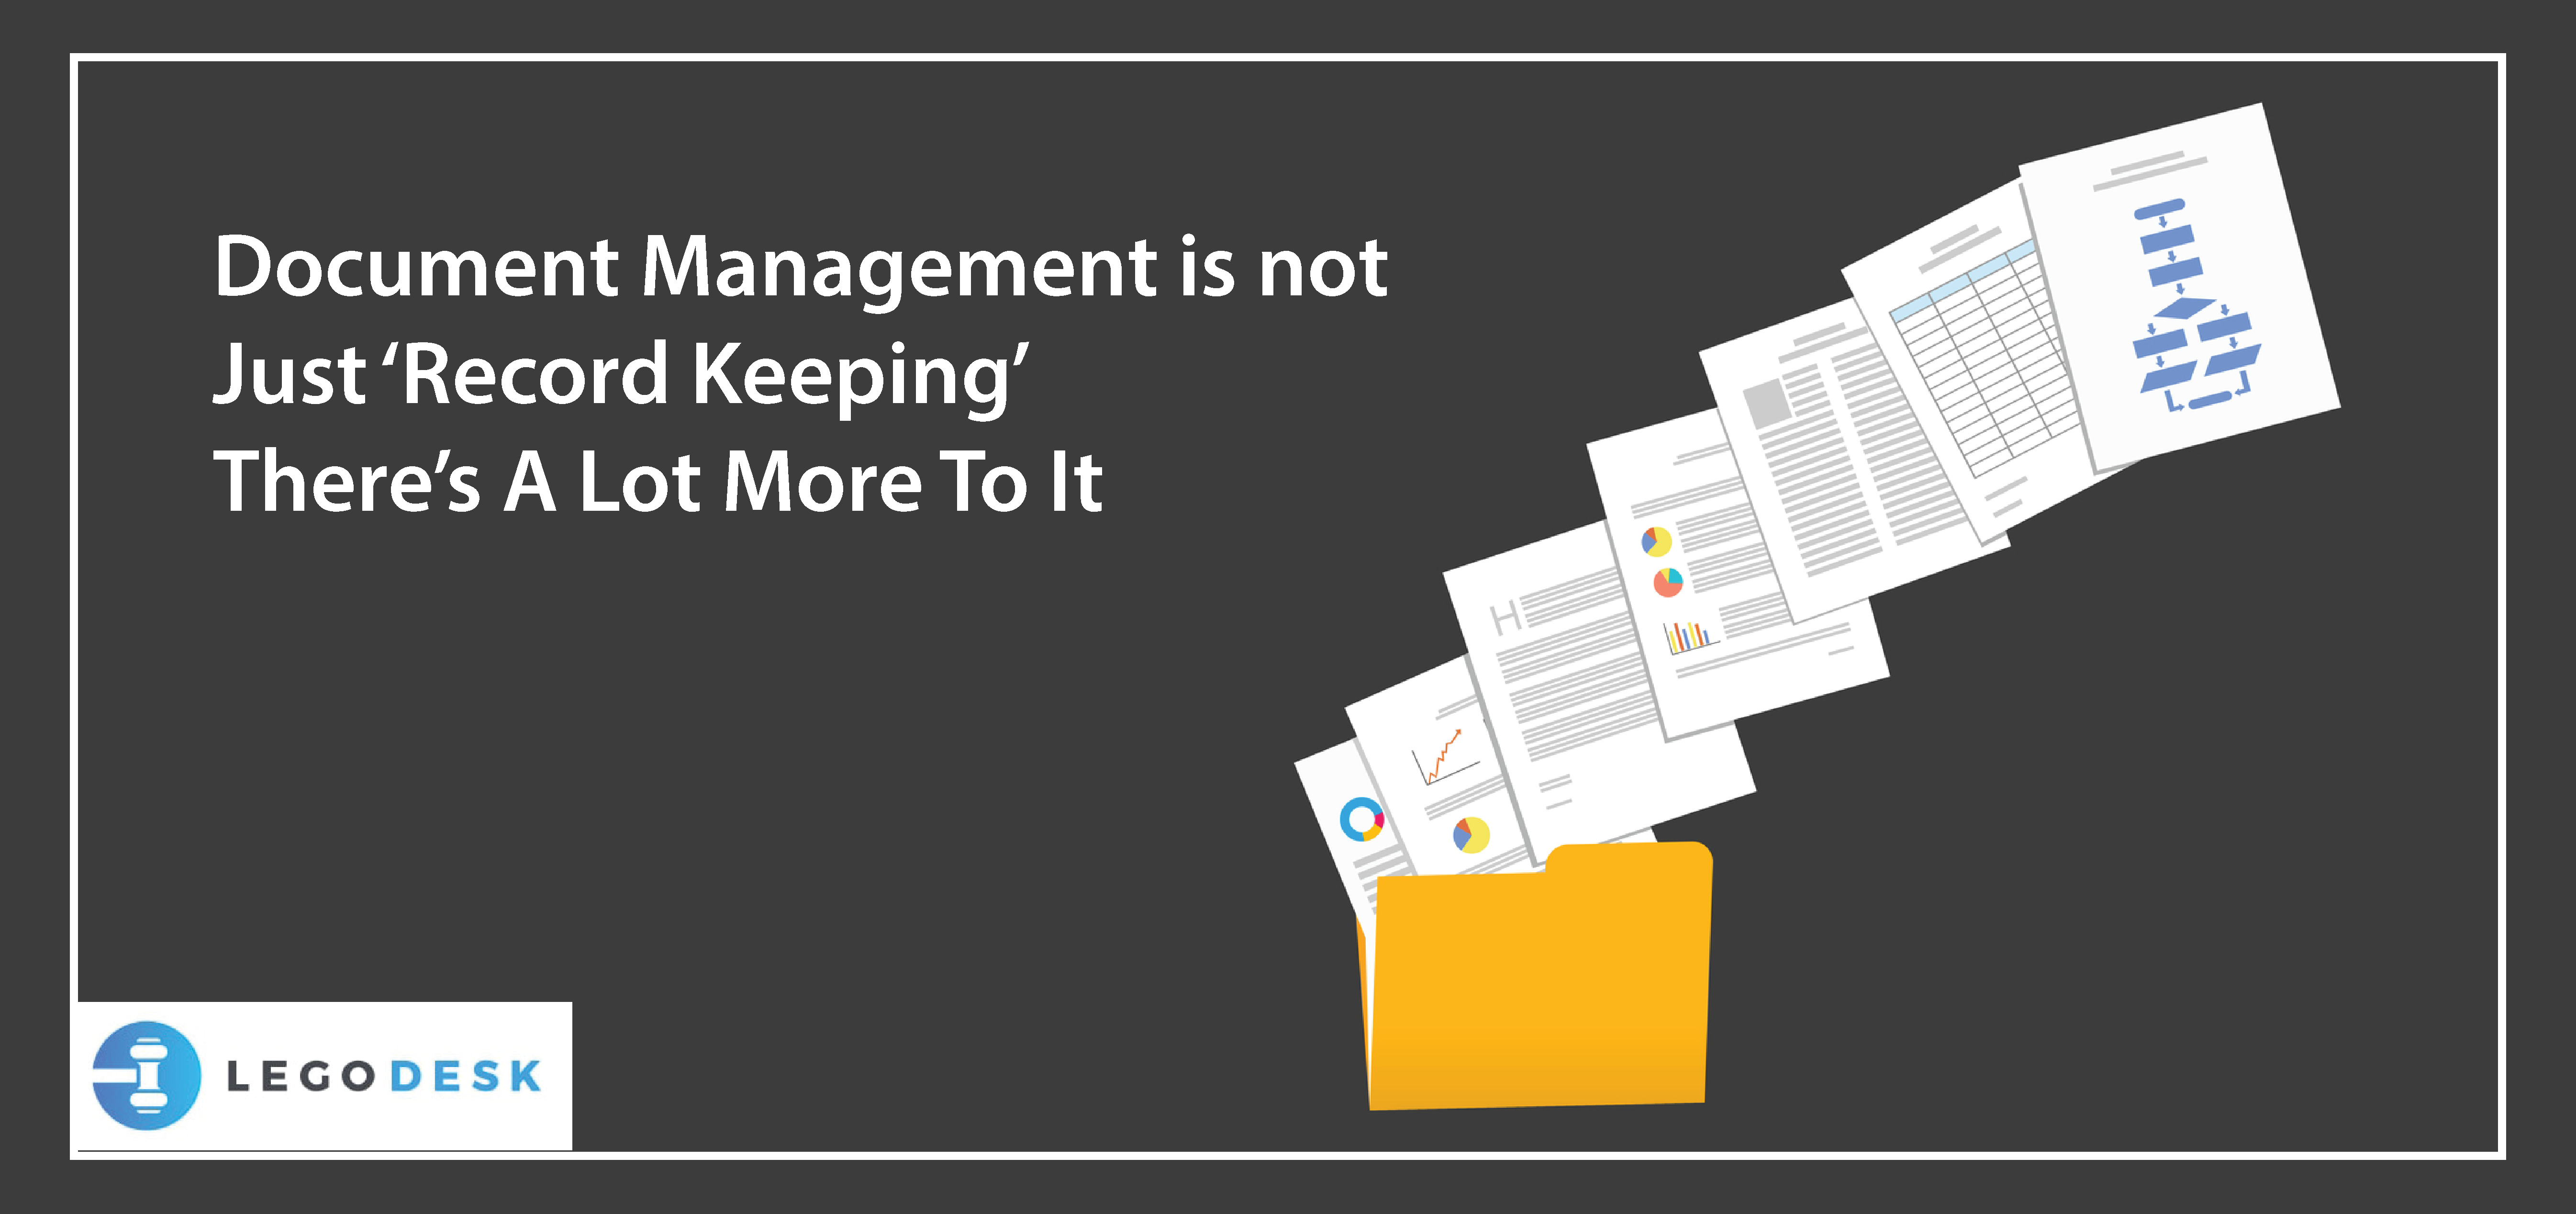 Document Management: Not Just a 'Record Keeping' Method